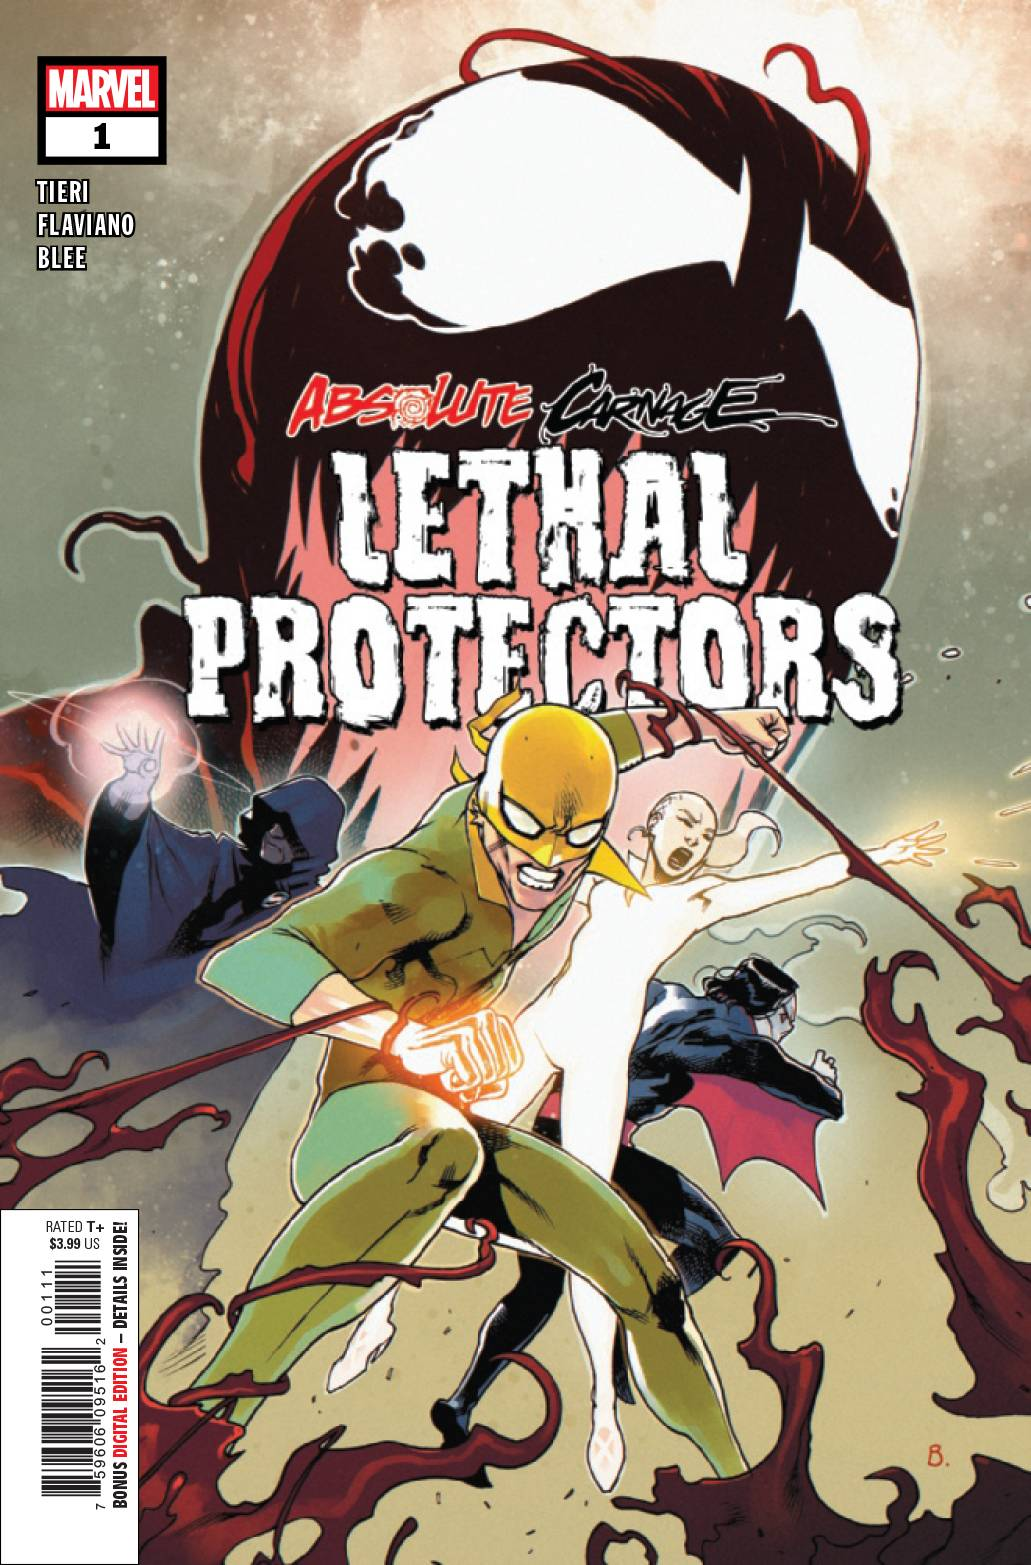 08/28/2019 ABSOLUTE CARNAGE LETHAL PROTECTORS #1 (OF 3) AC